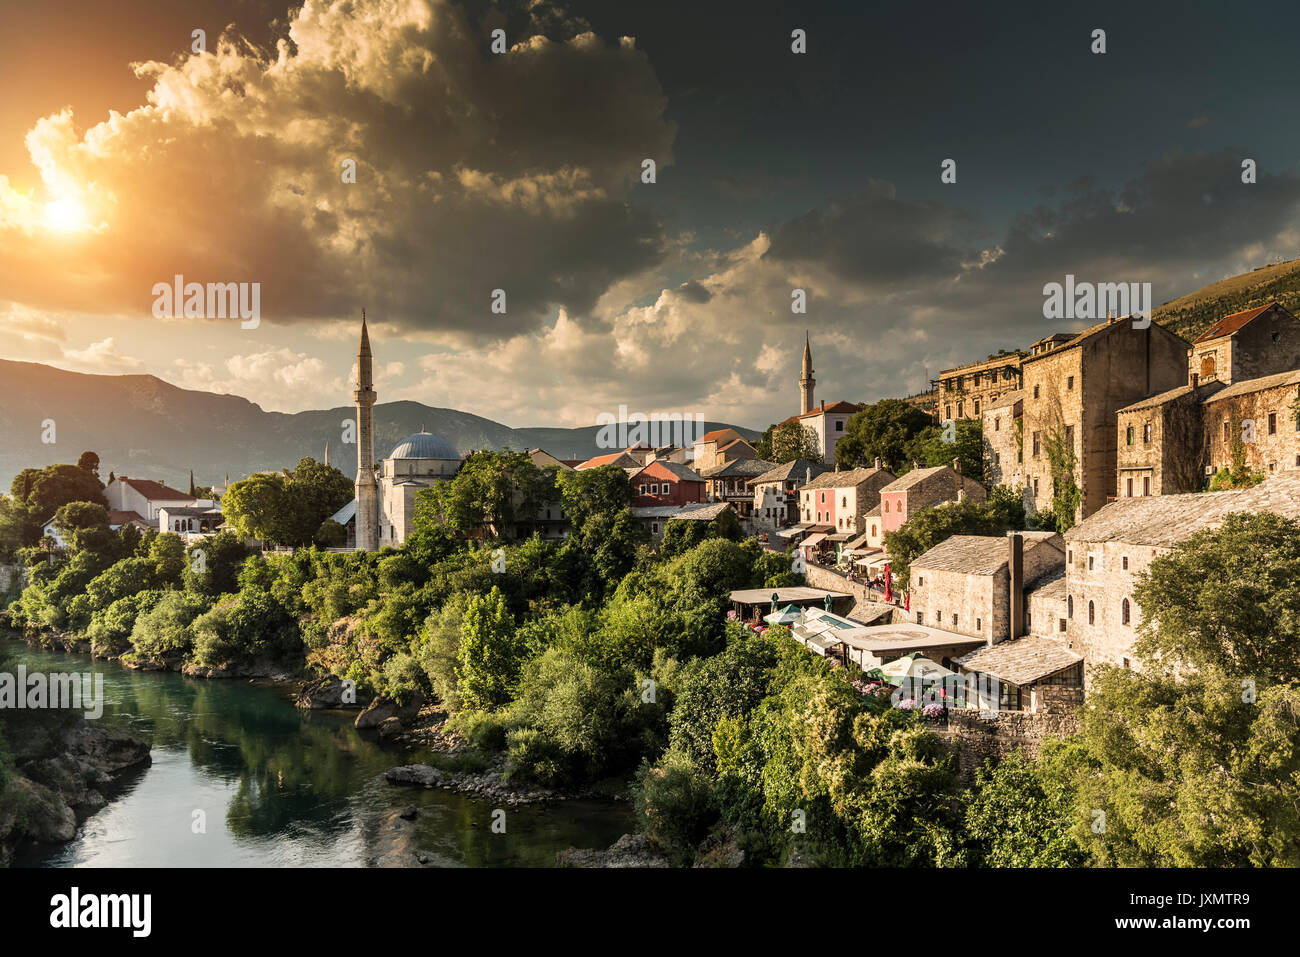 Scenic view, Mostar, Federation of Bosnia and Herzegovina, Bosnia and Herzegovina, Europe - Stock Image